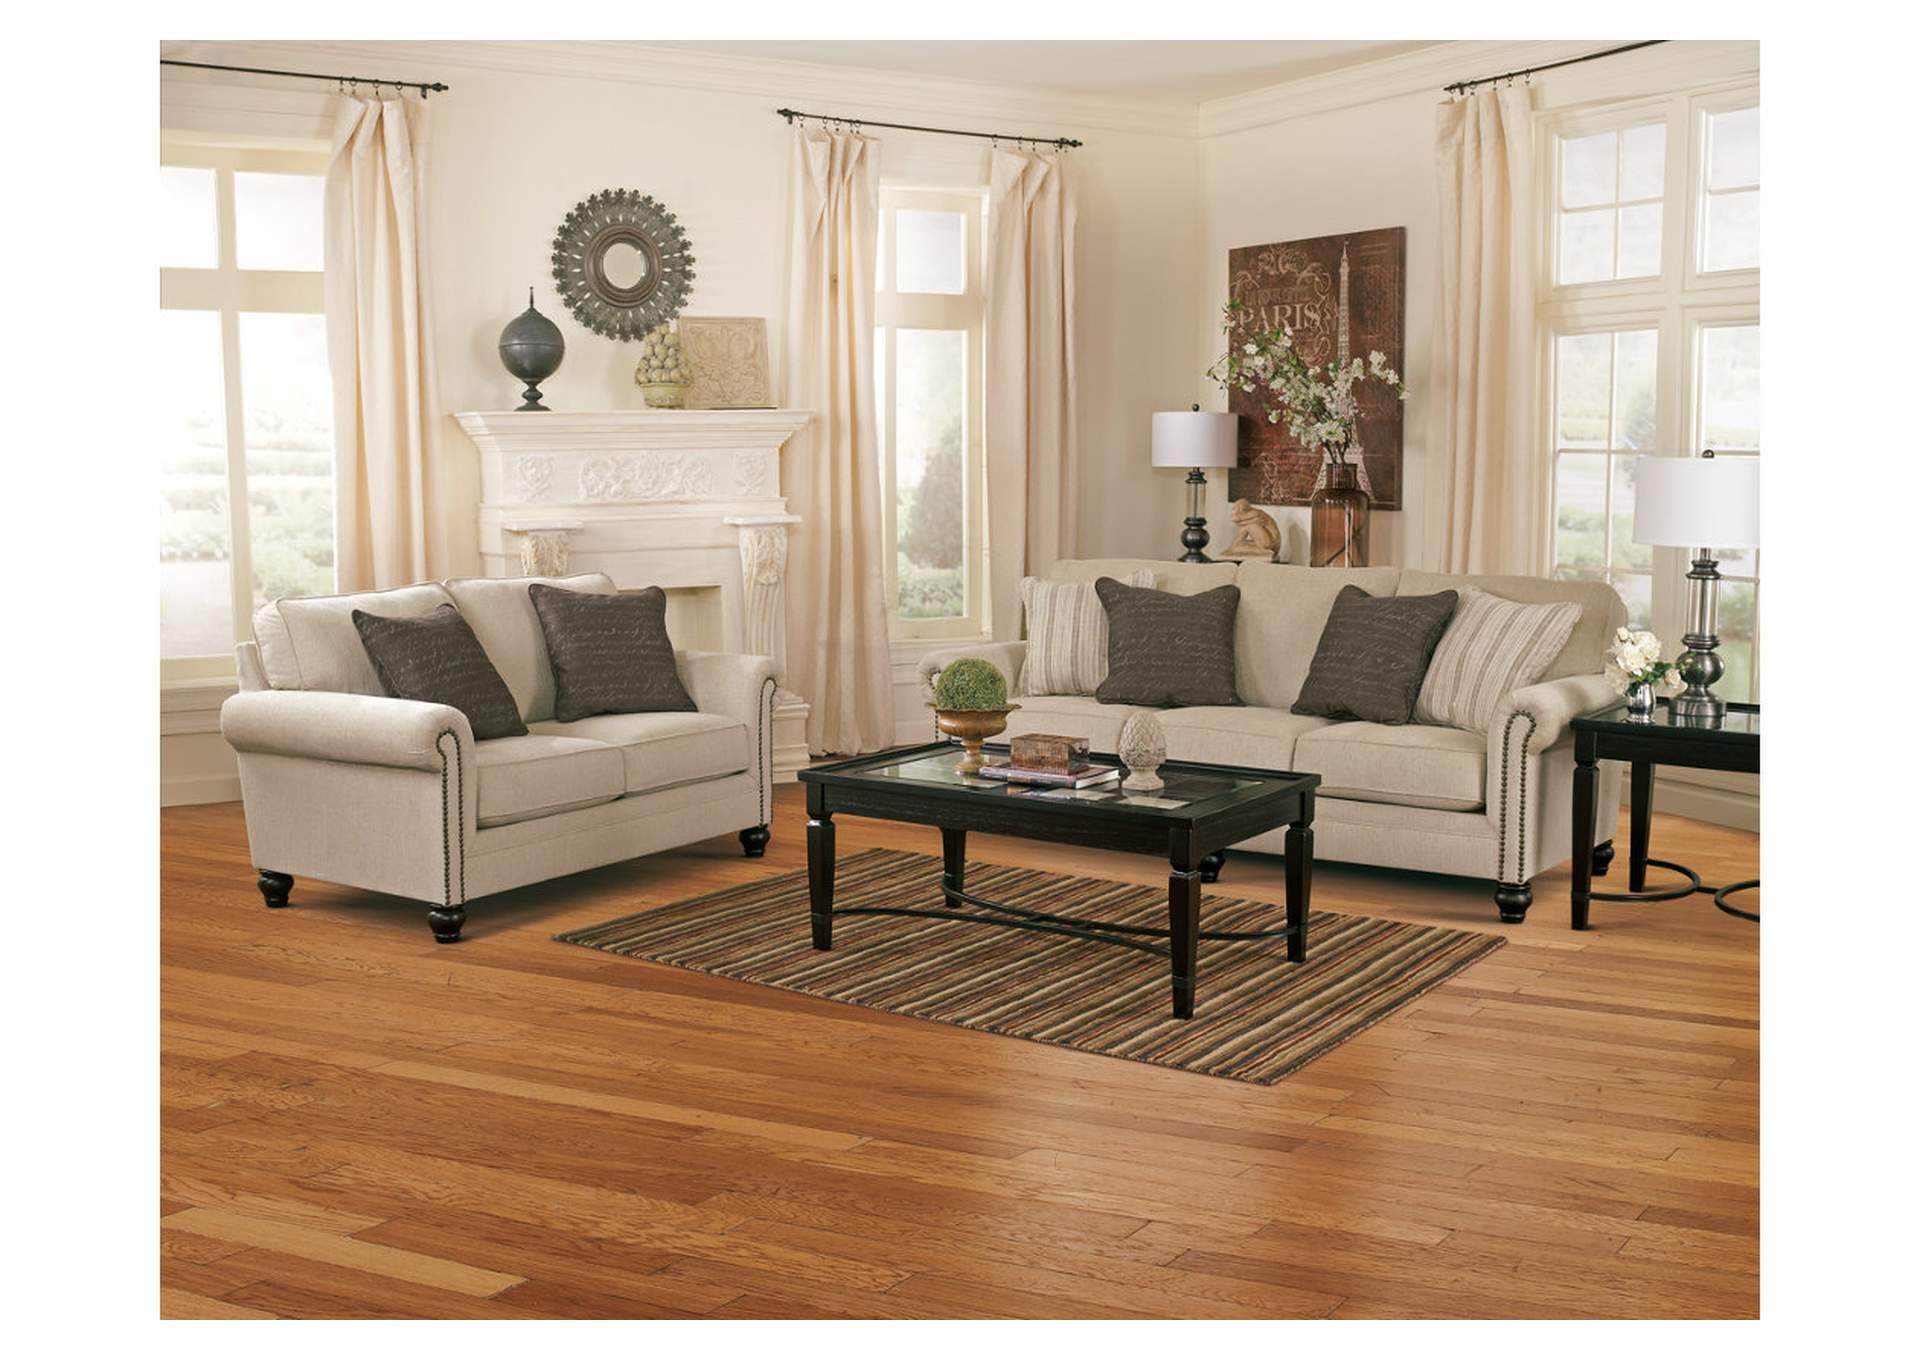 Markson s Furniture Rochester, NY 14m